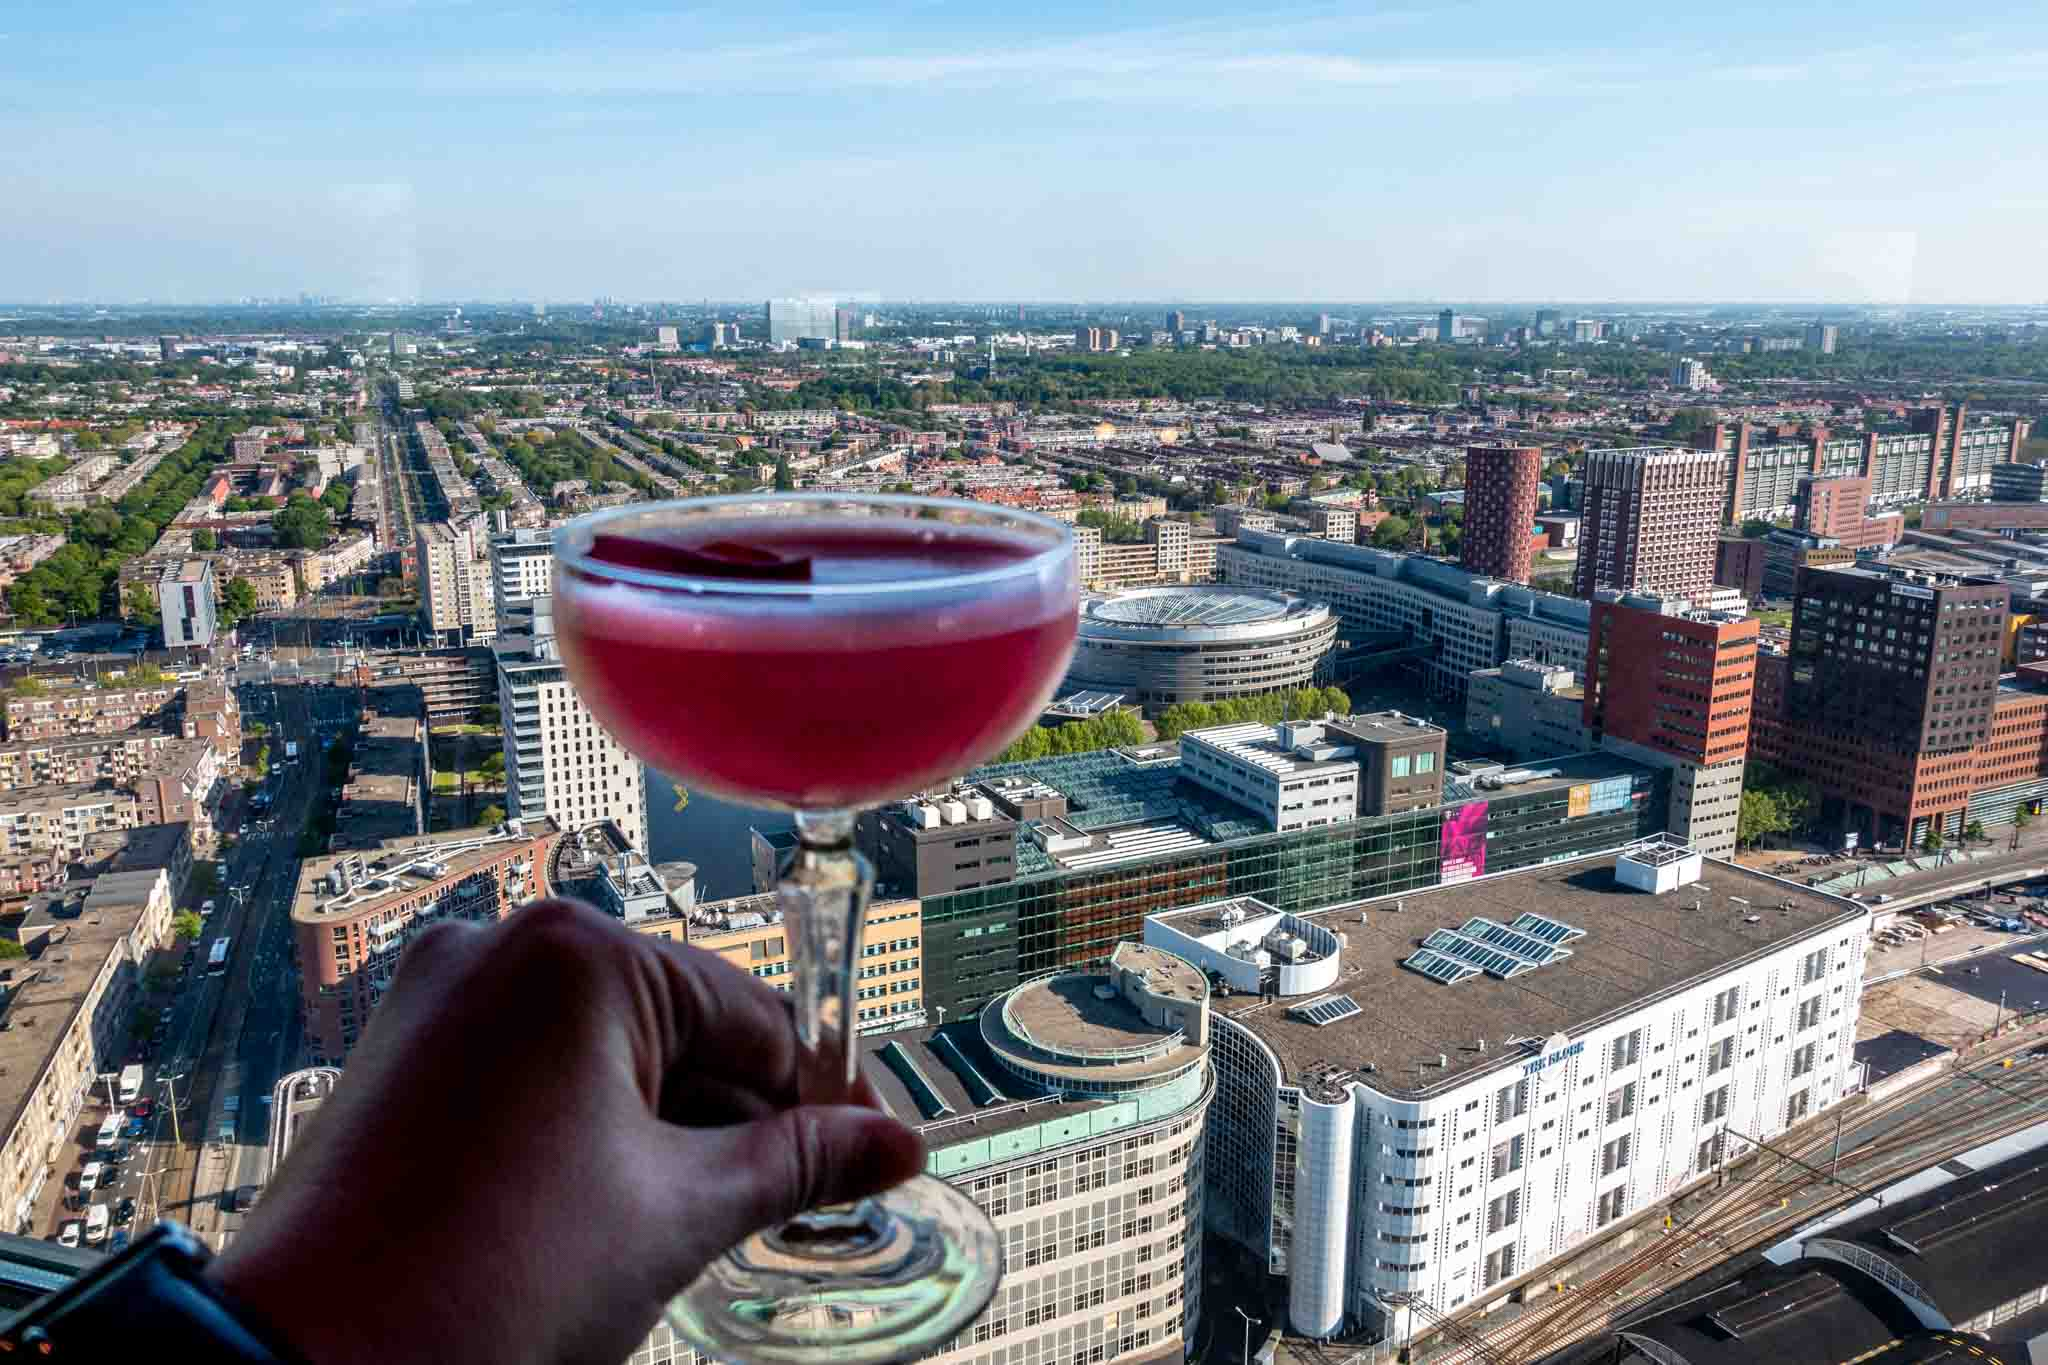 Person holding a cocktail overlooking the skyline of The Hague